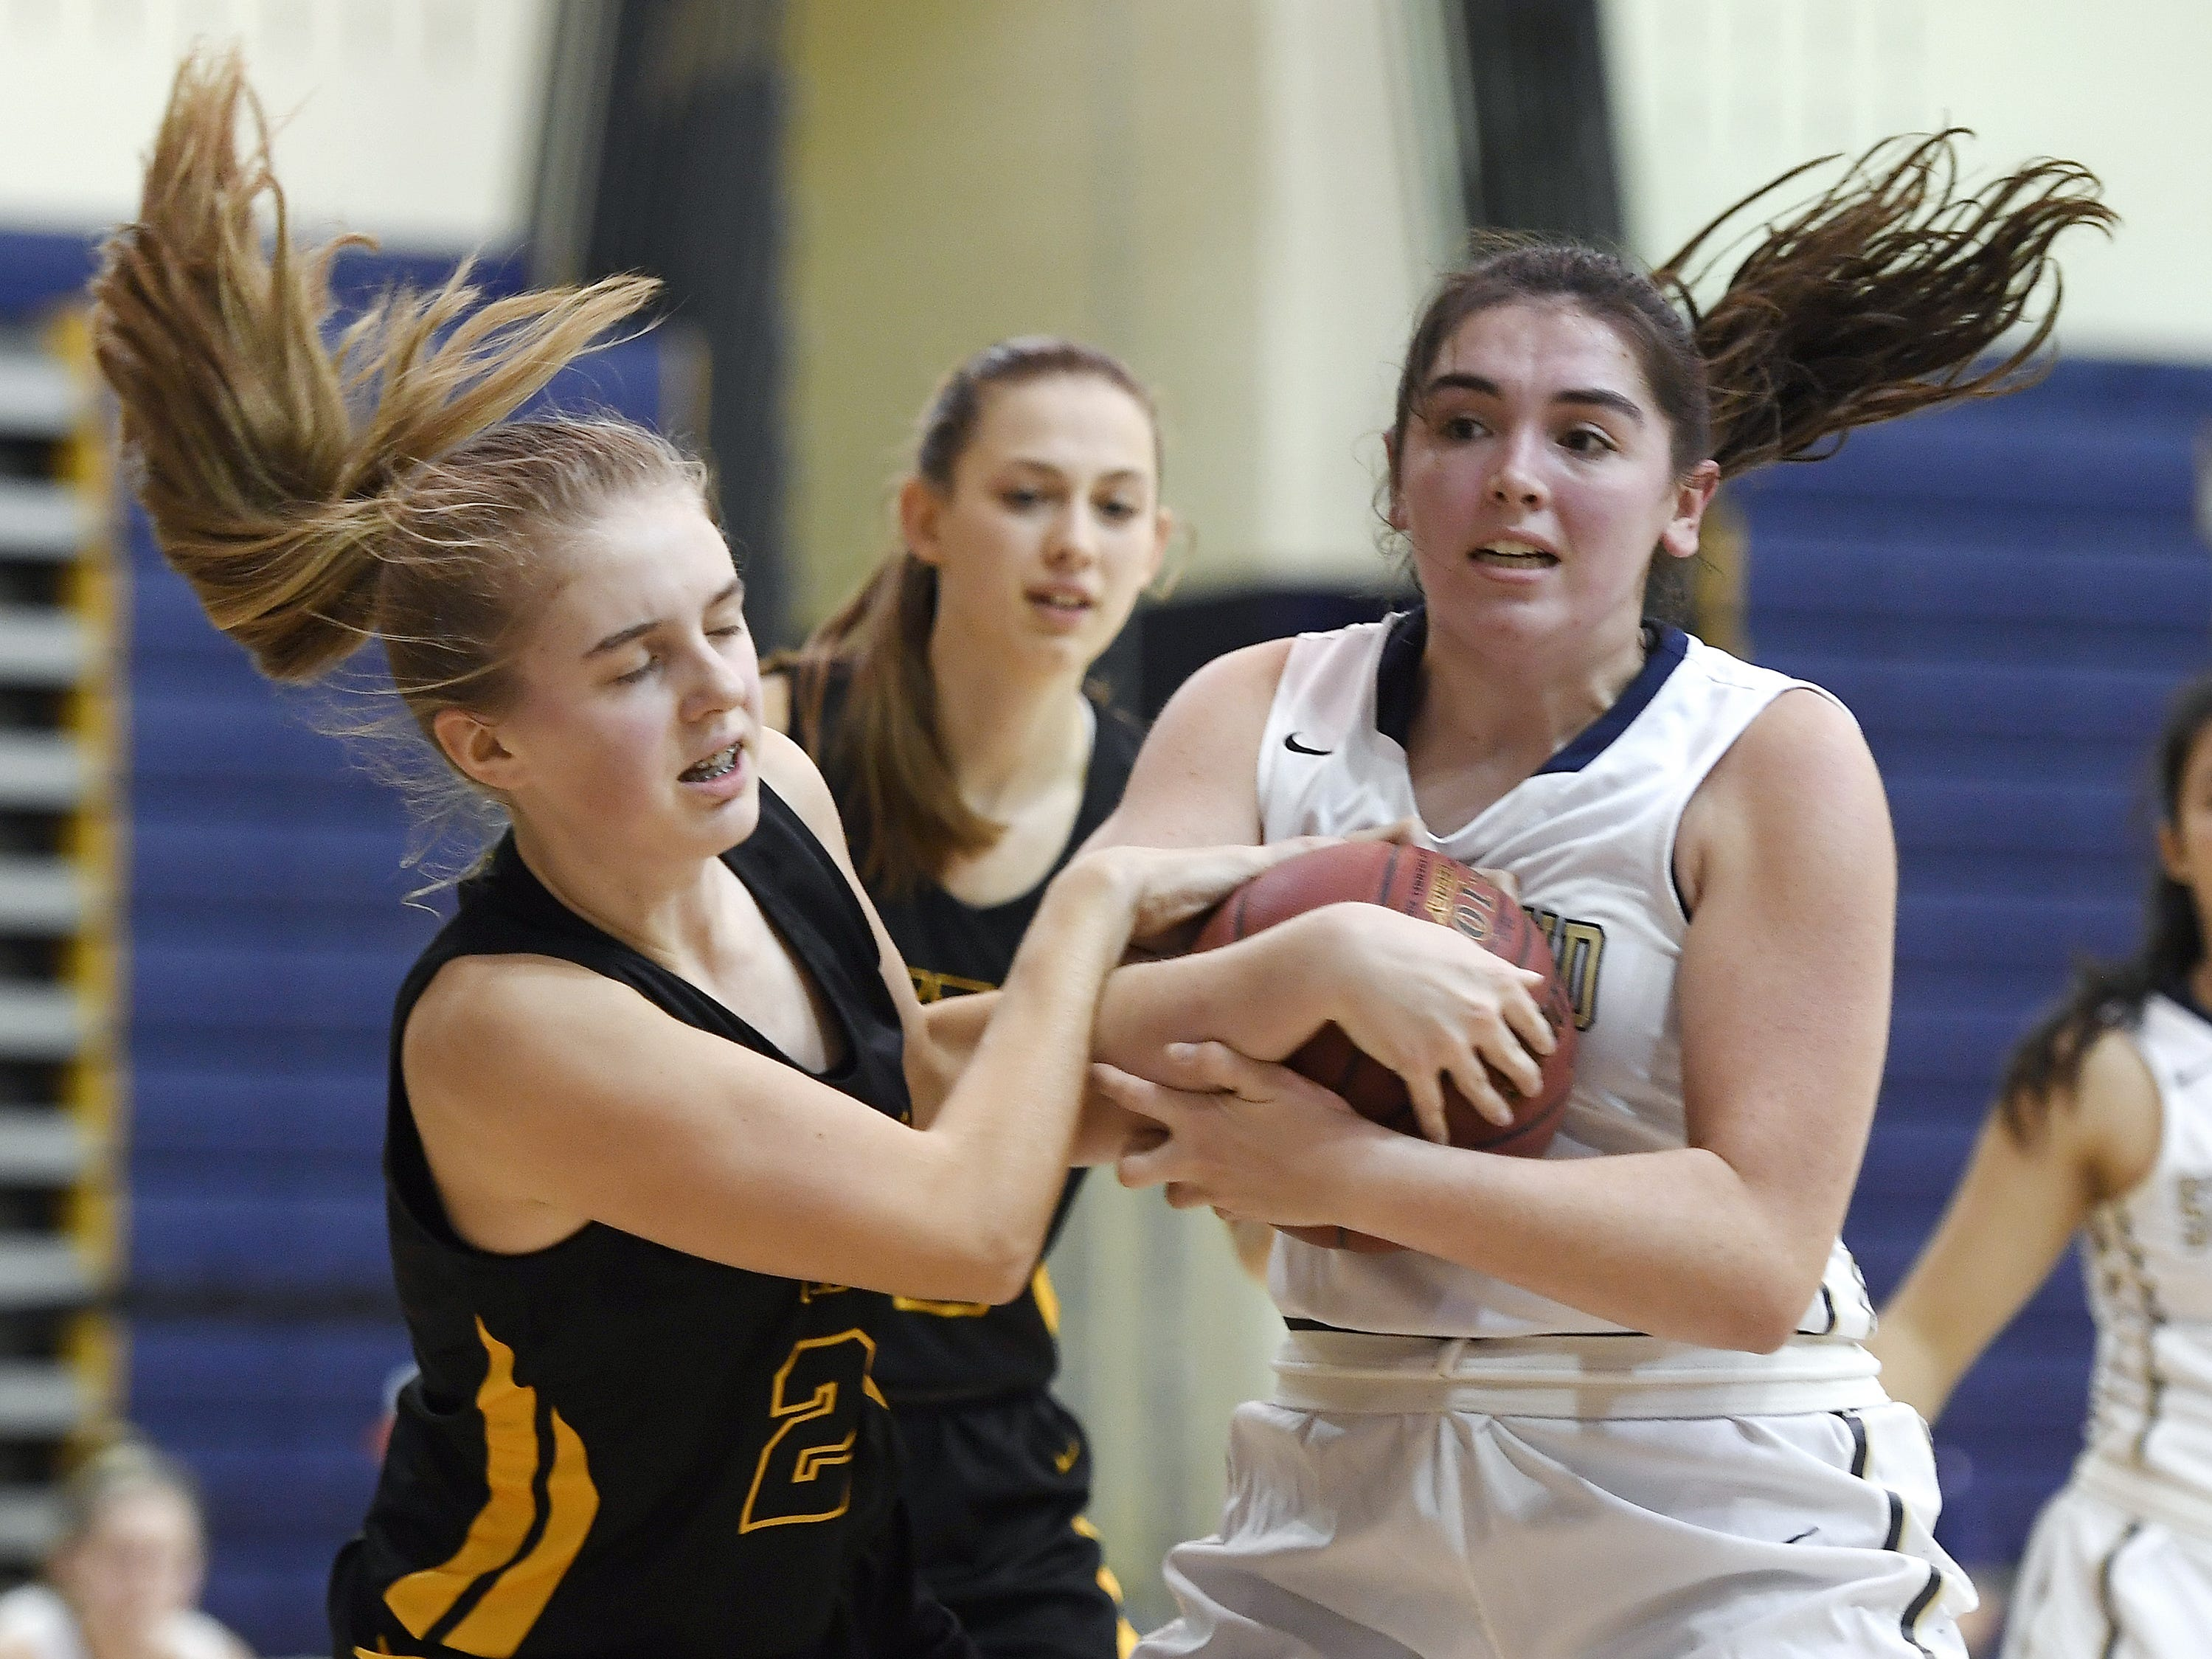 HF-L's Teagan Kamm, left, ties the ball up with Pittsford Sutherland's Libby Kenneally during a regular season game played at Pittsford Sutherland High School on Thursday, Nov. 29, 2018. Pittsford Sutherland beat Honeoye Falls-Lima in overtime 53-47.